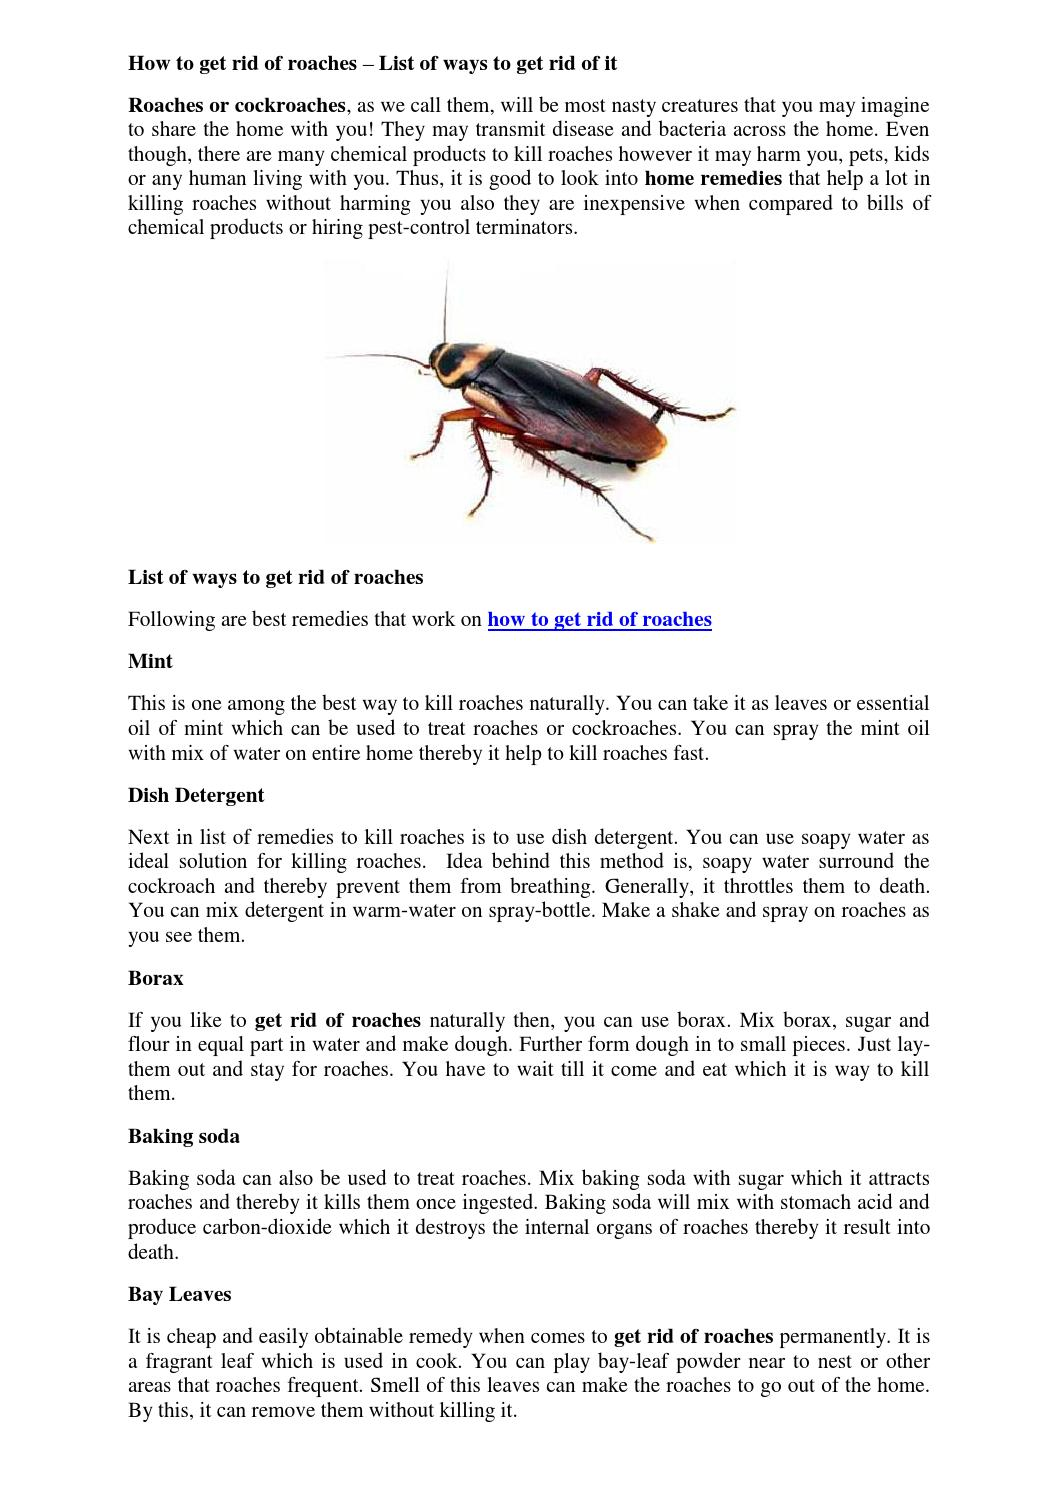 How to get rid of roaches list of ways by juliesamuel - issuu